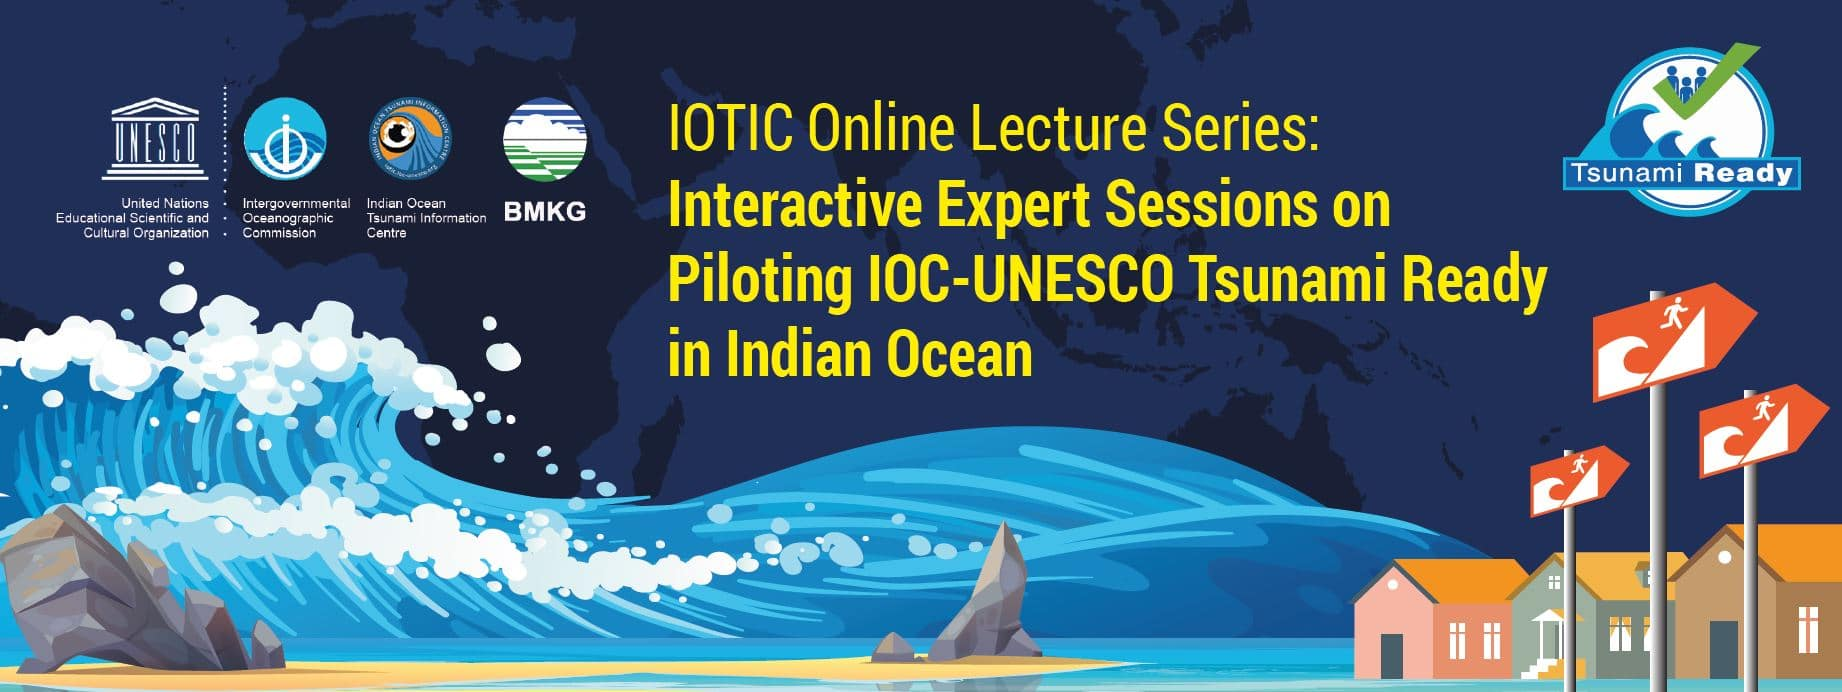 Online Lecture Series